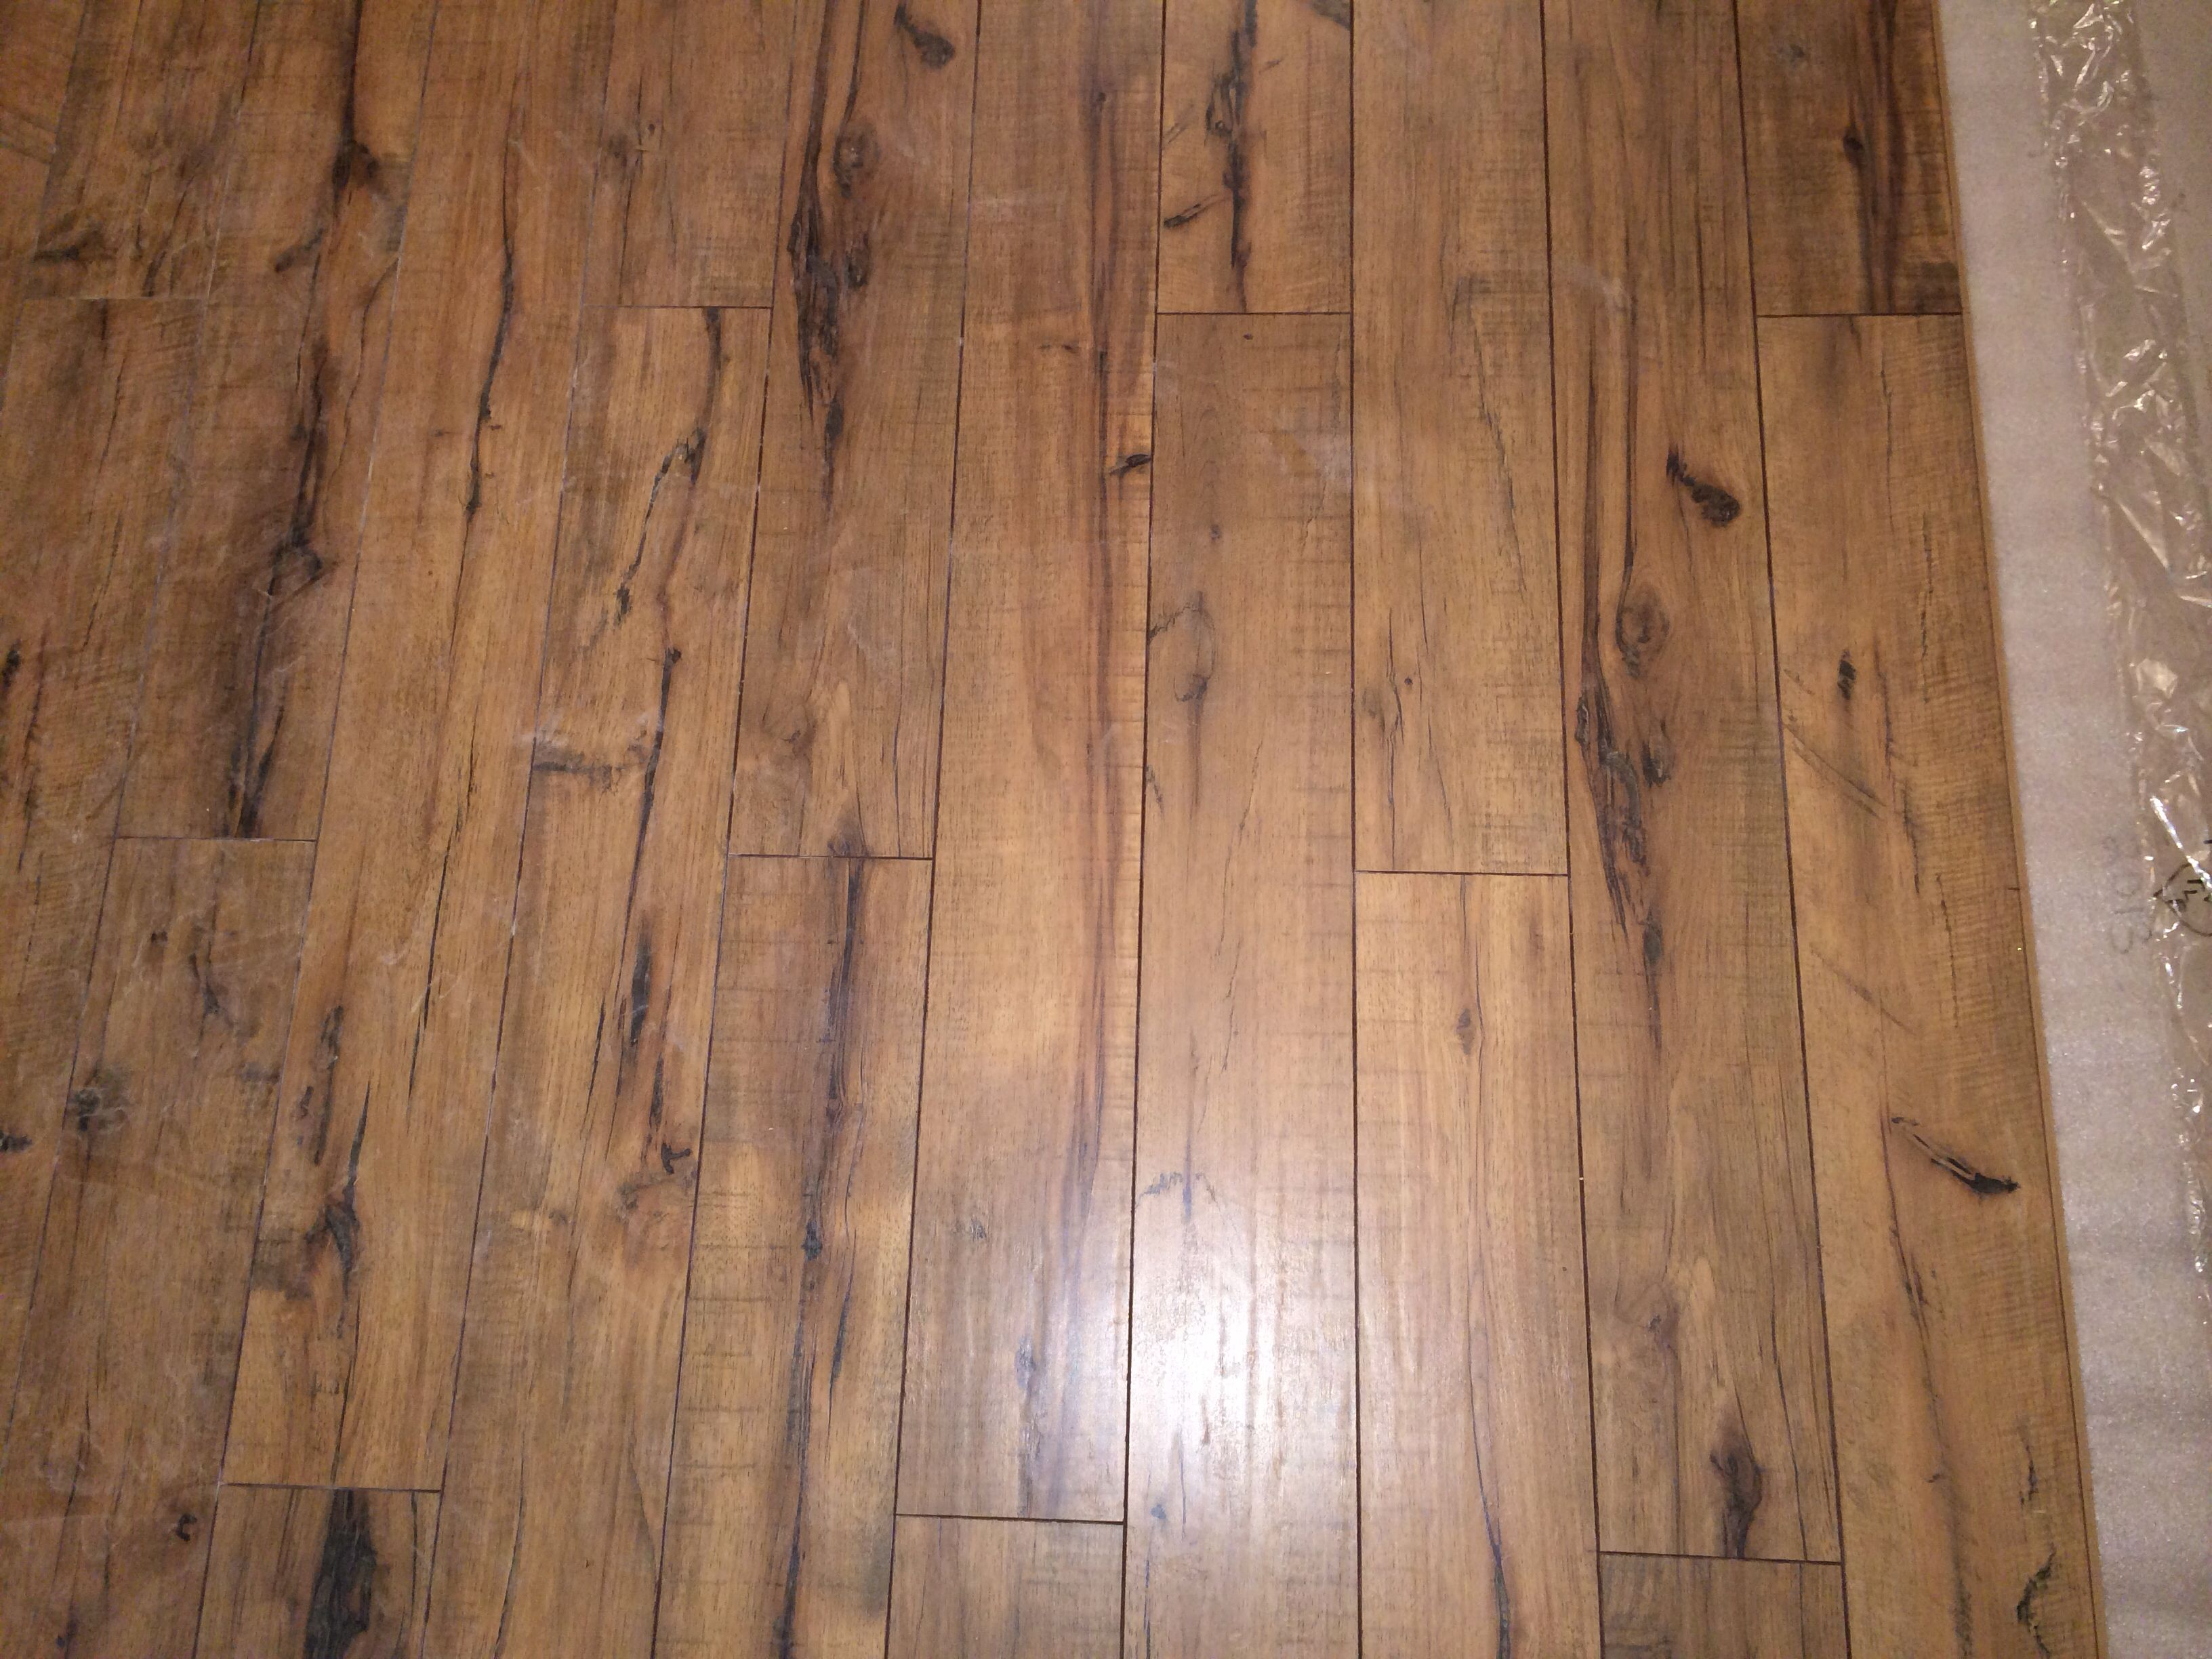 Pin By Emily Nunley On My House Flooring Laminate Flooring Wood Laminate